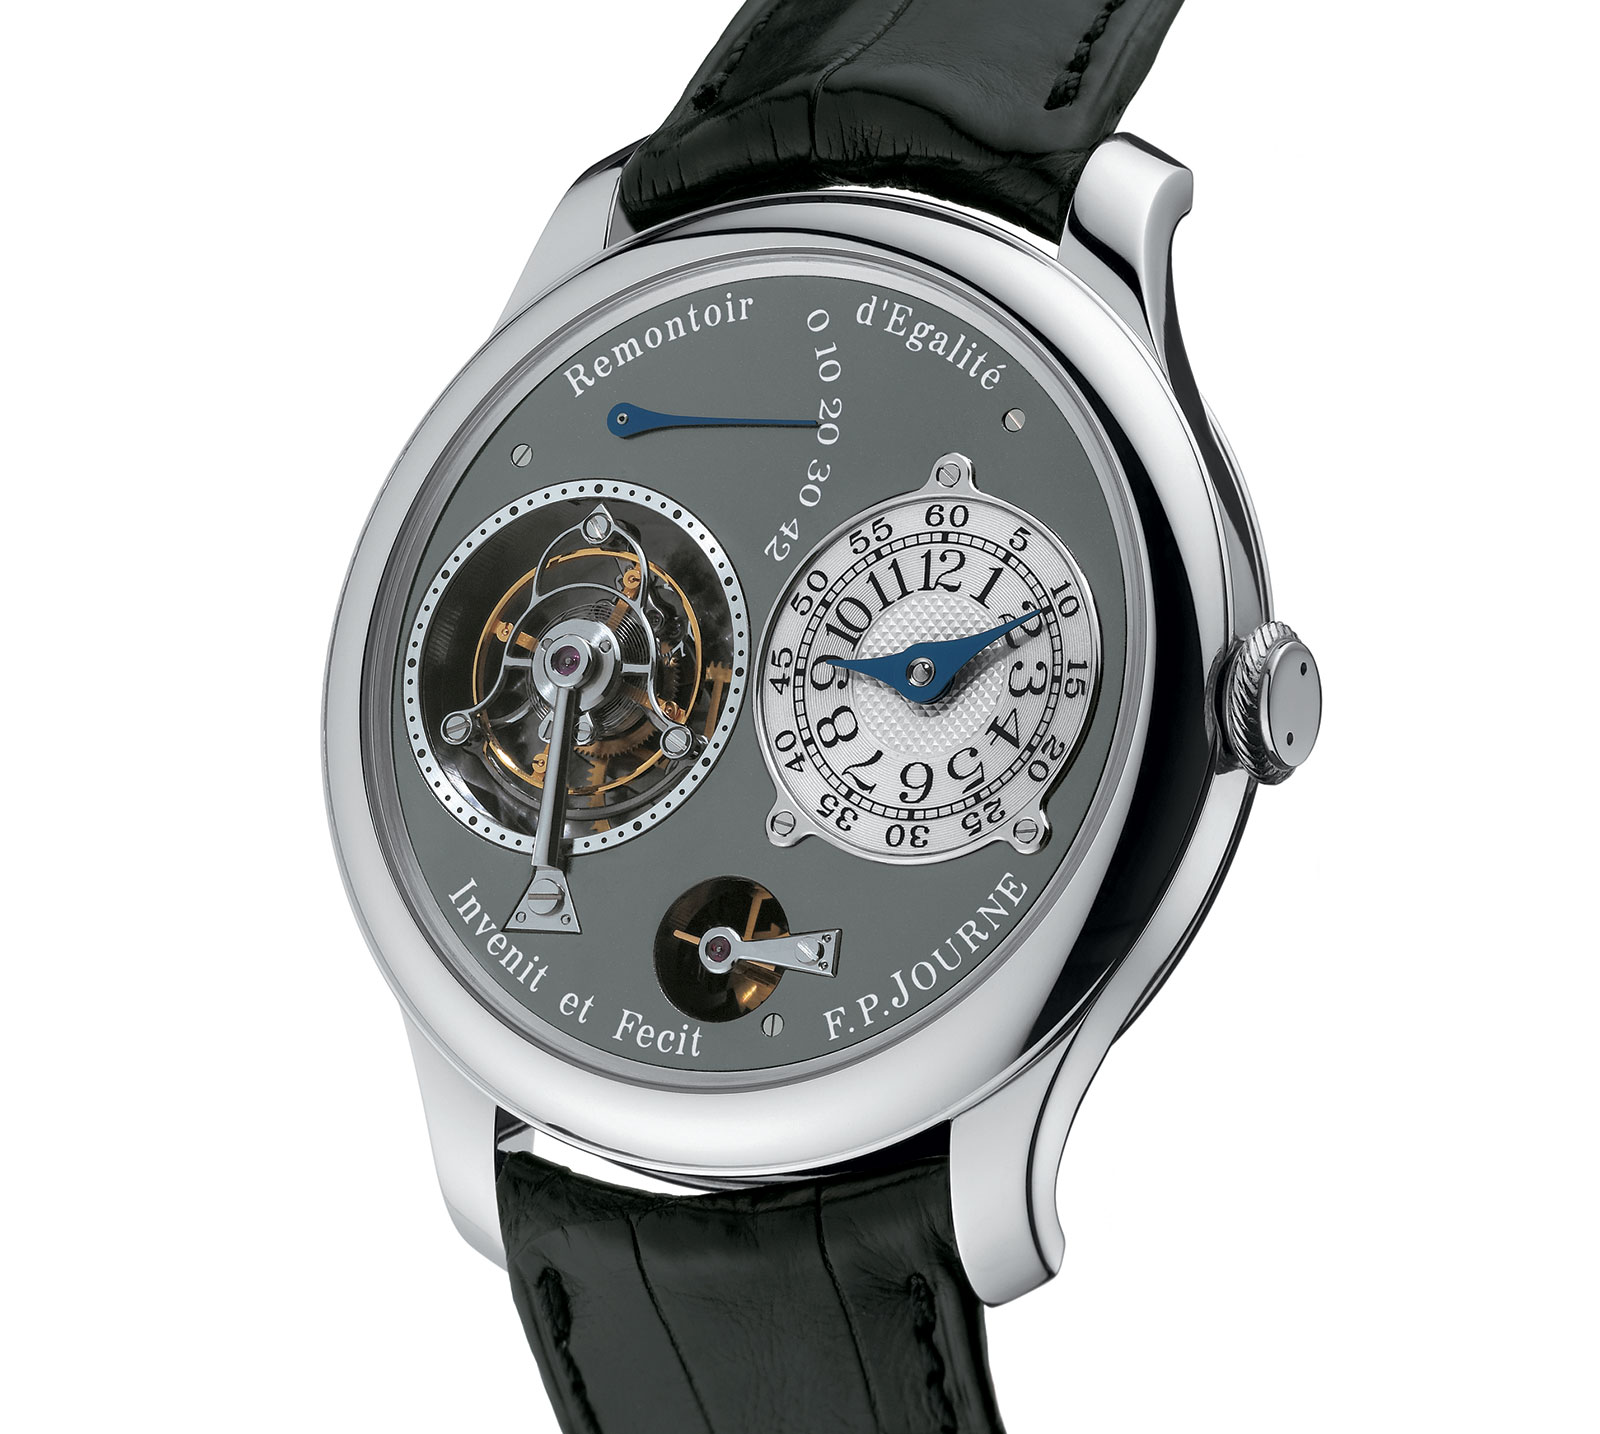 FP Journe Ruthenium Tourbillon Souverain